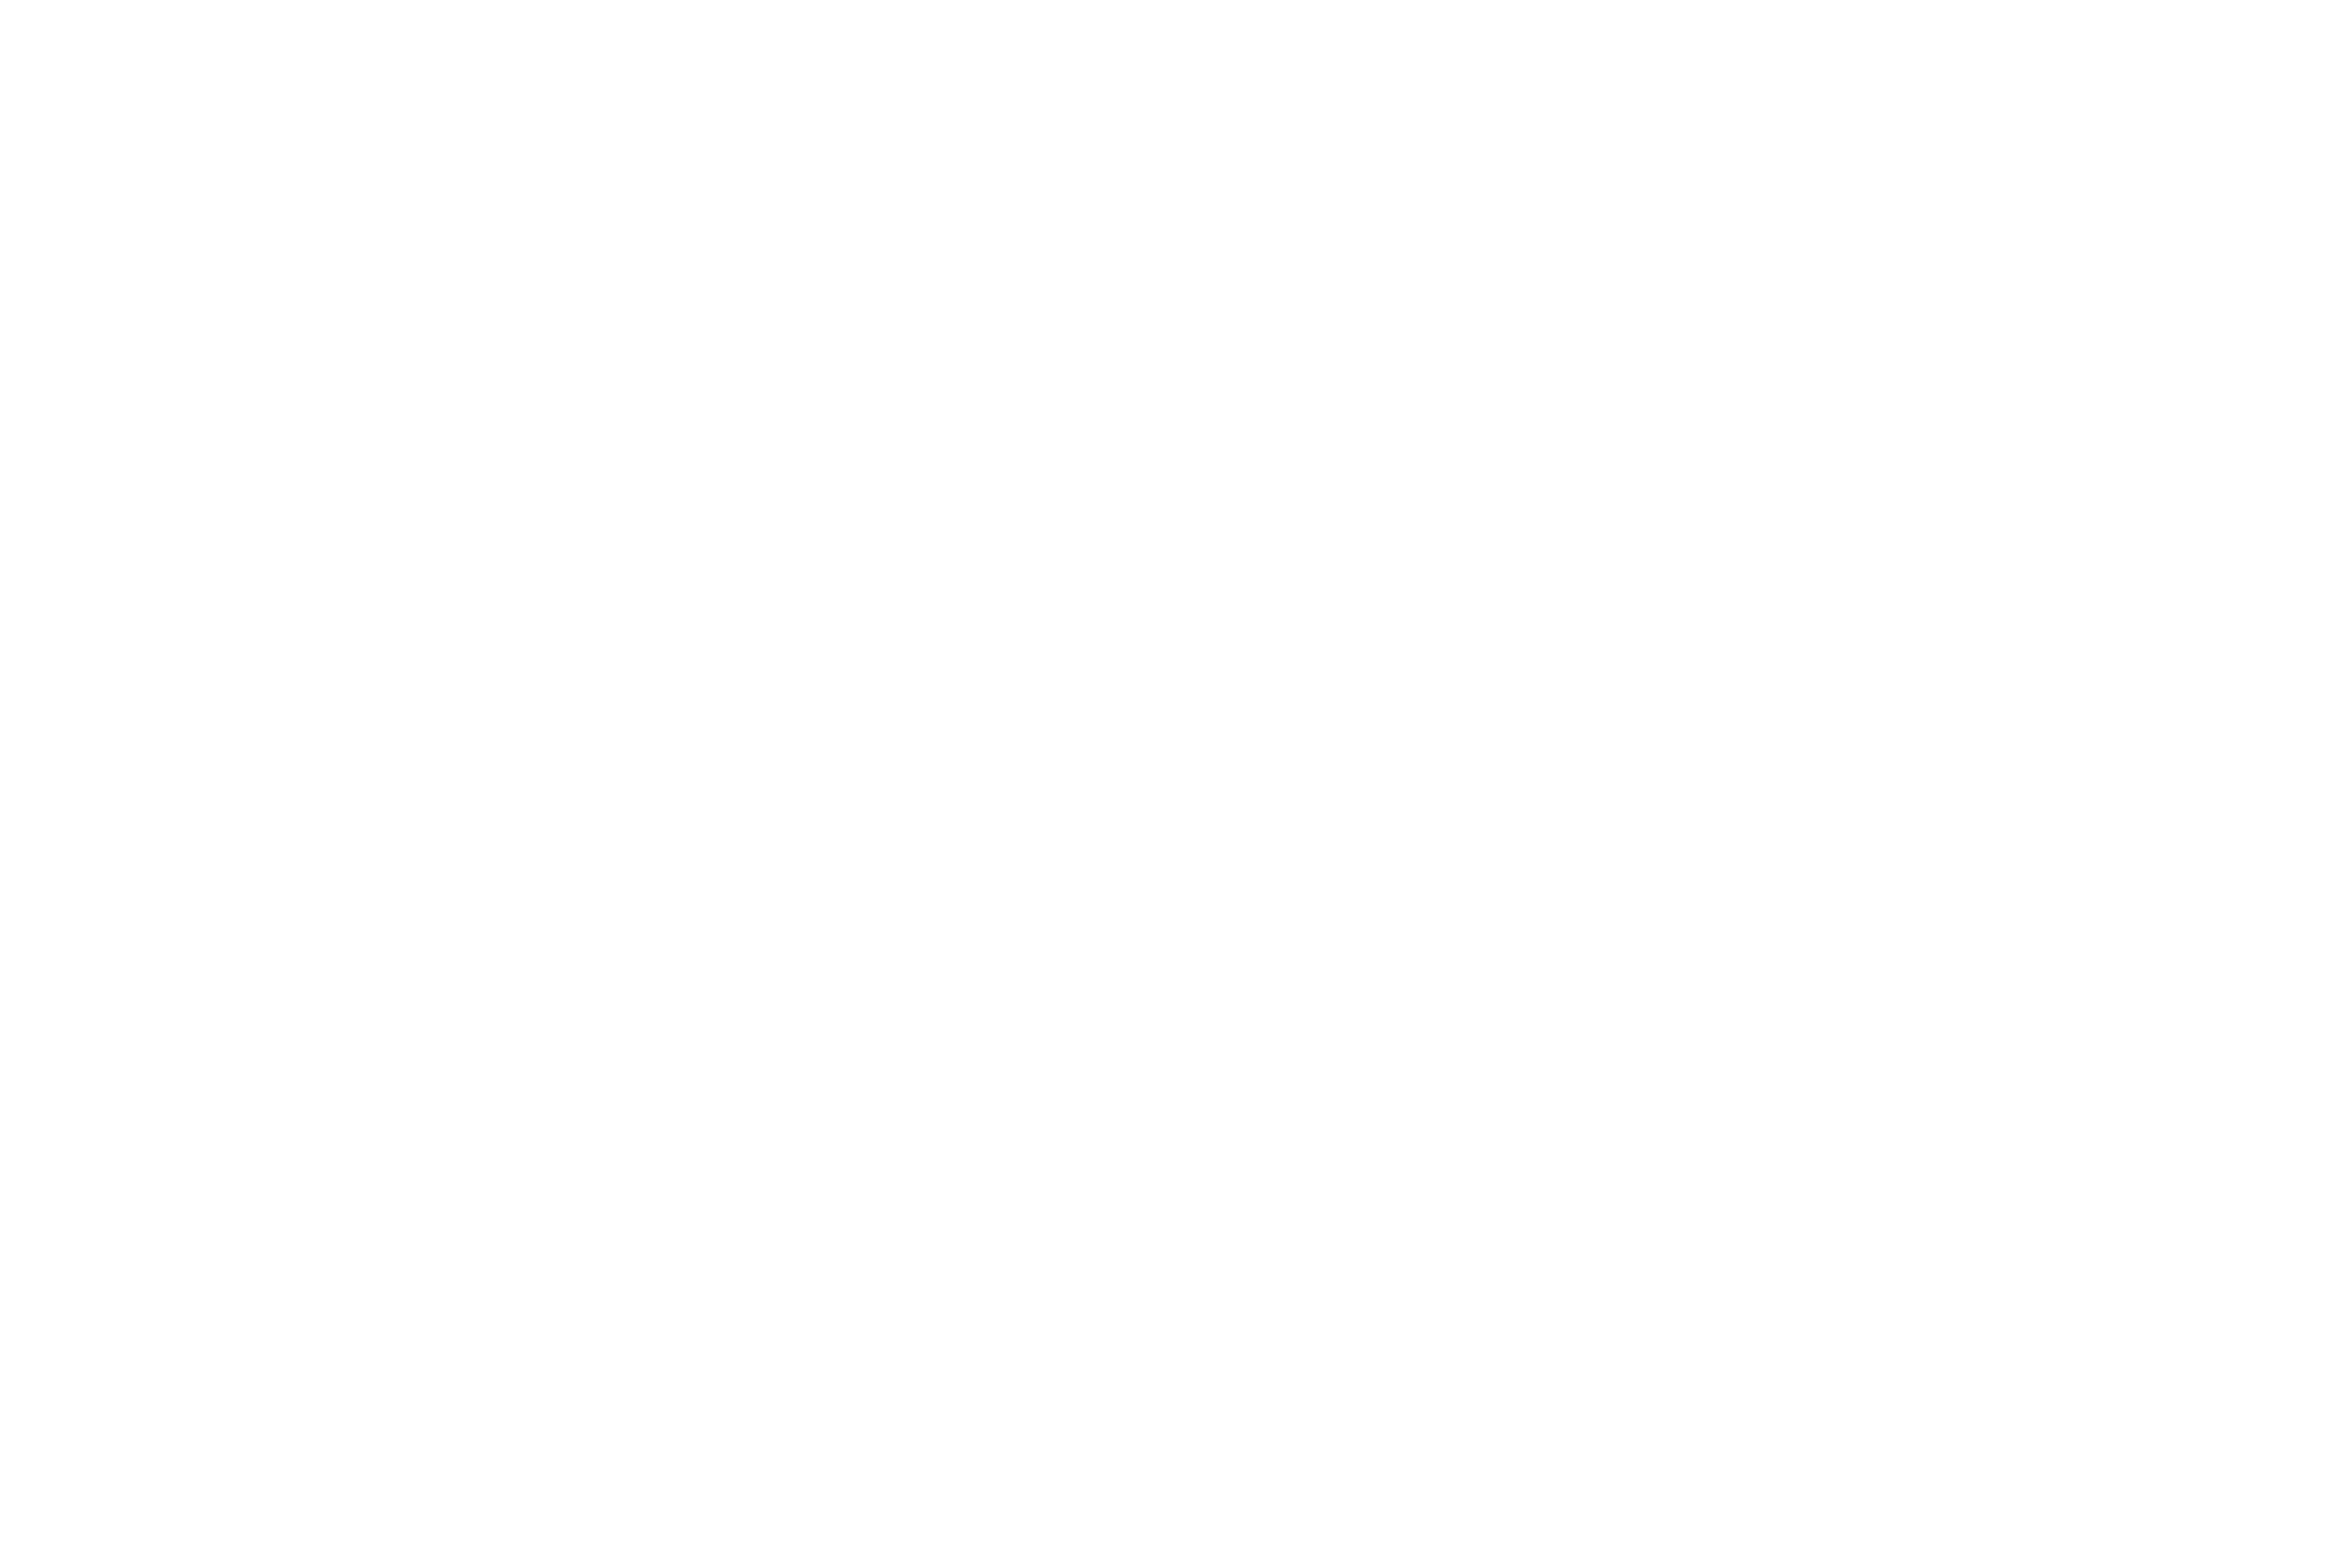 curtpeters